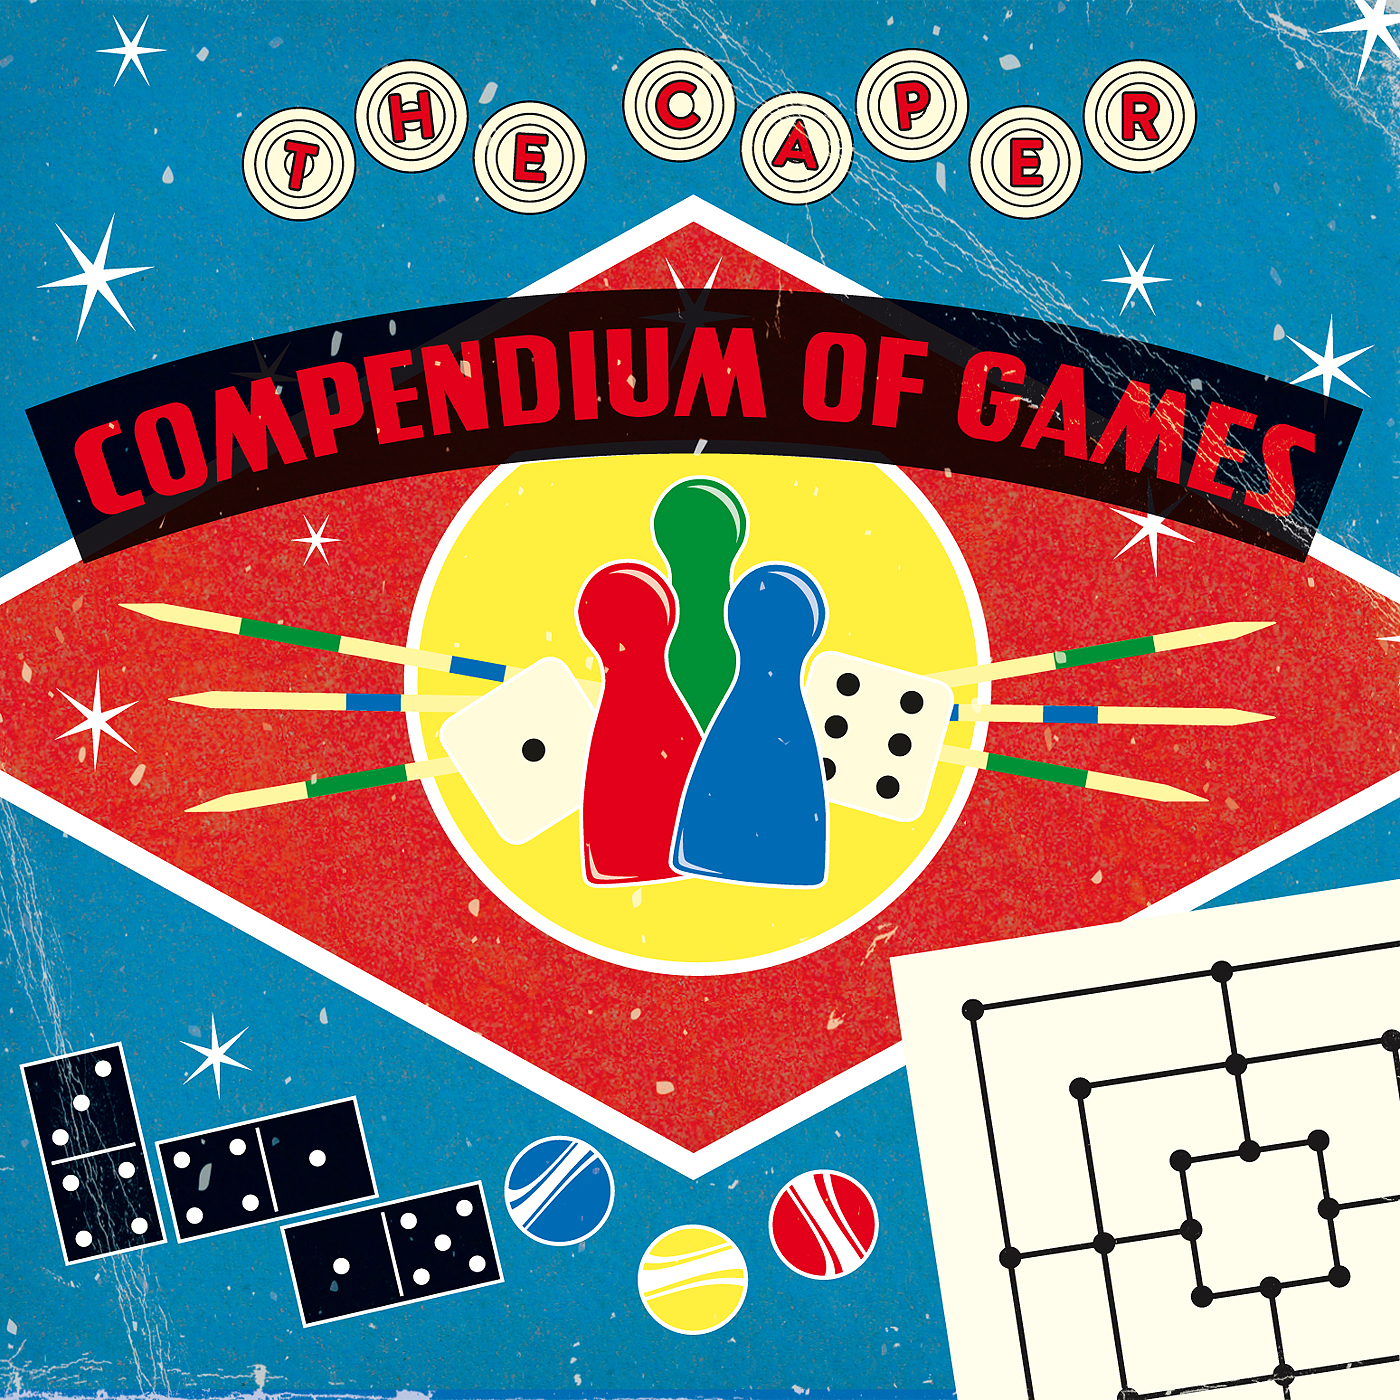 The Caper: Compendium Of Games